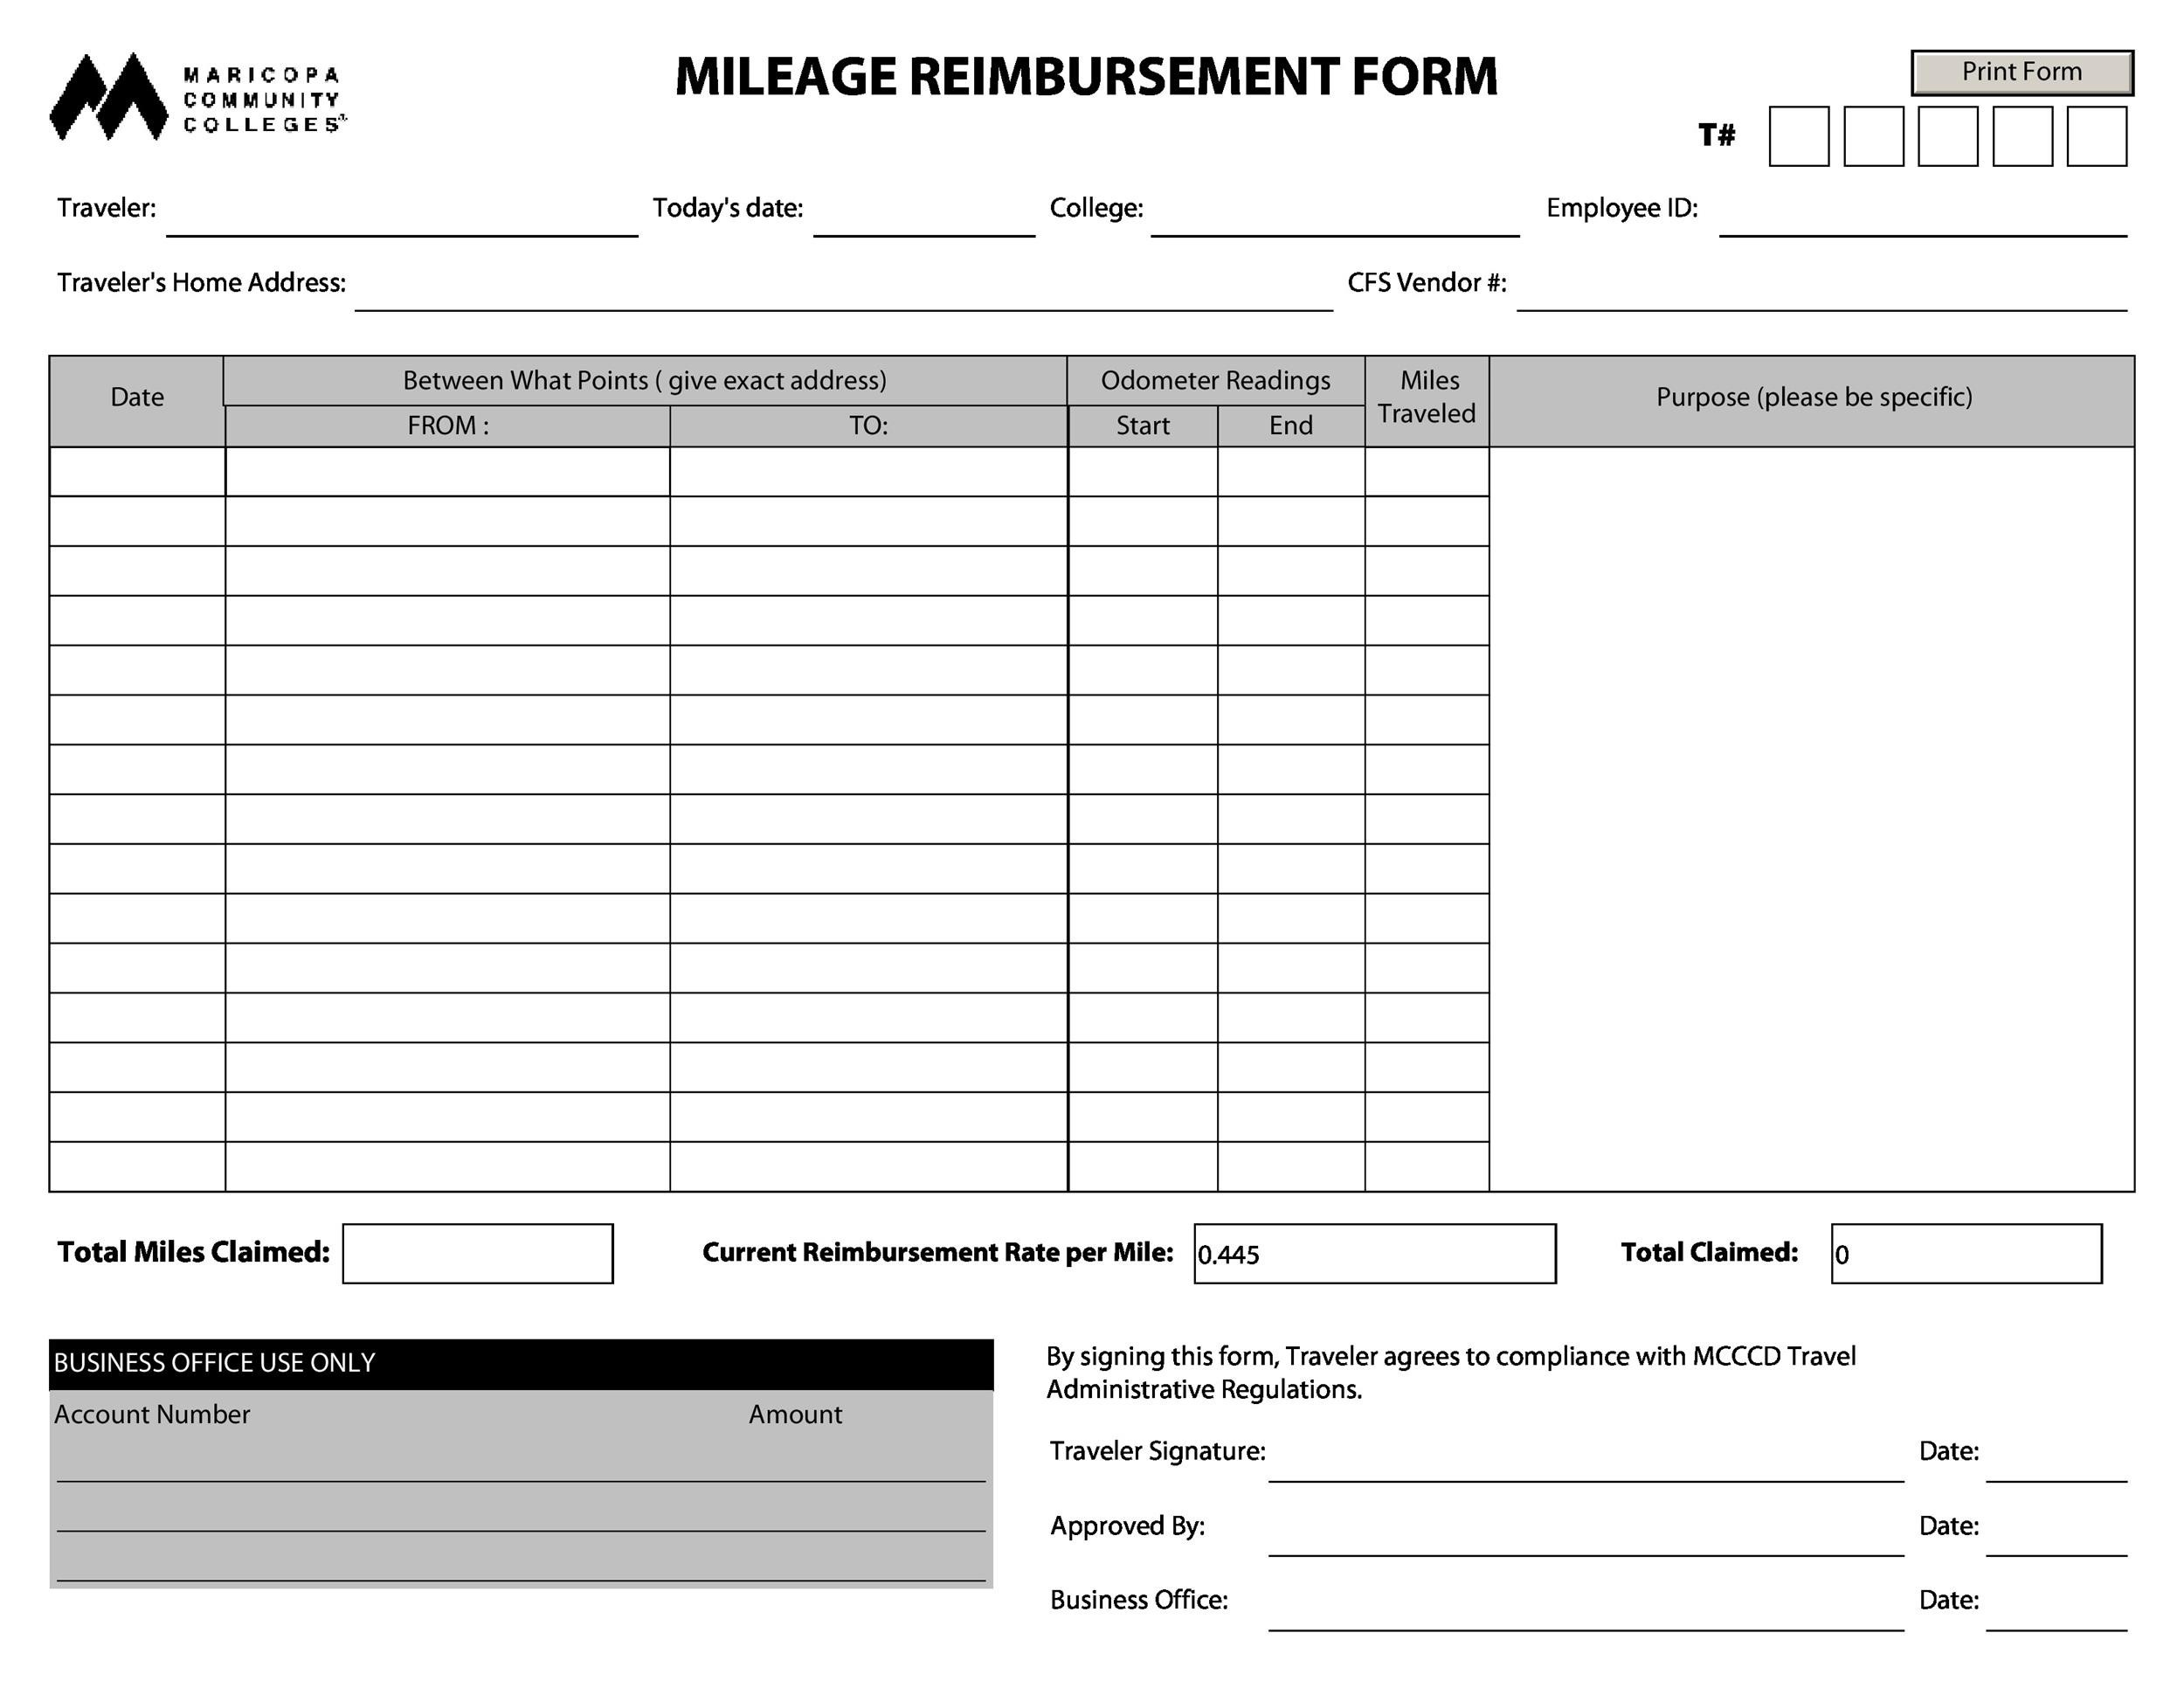 Reimbursement Form Reimbursement Form Templates Mileage Expense Vsp